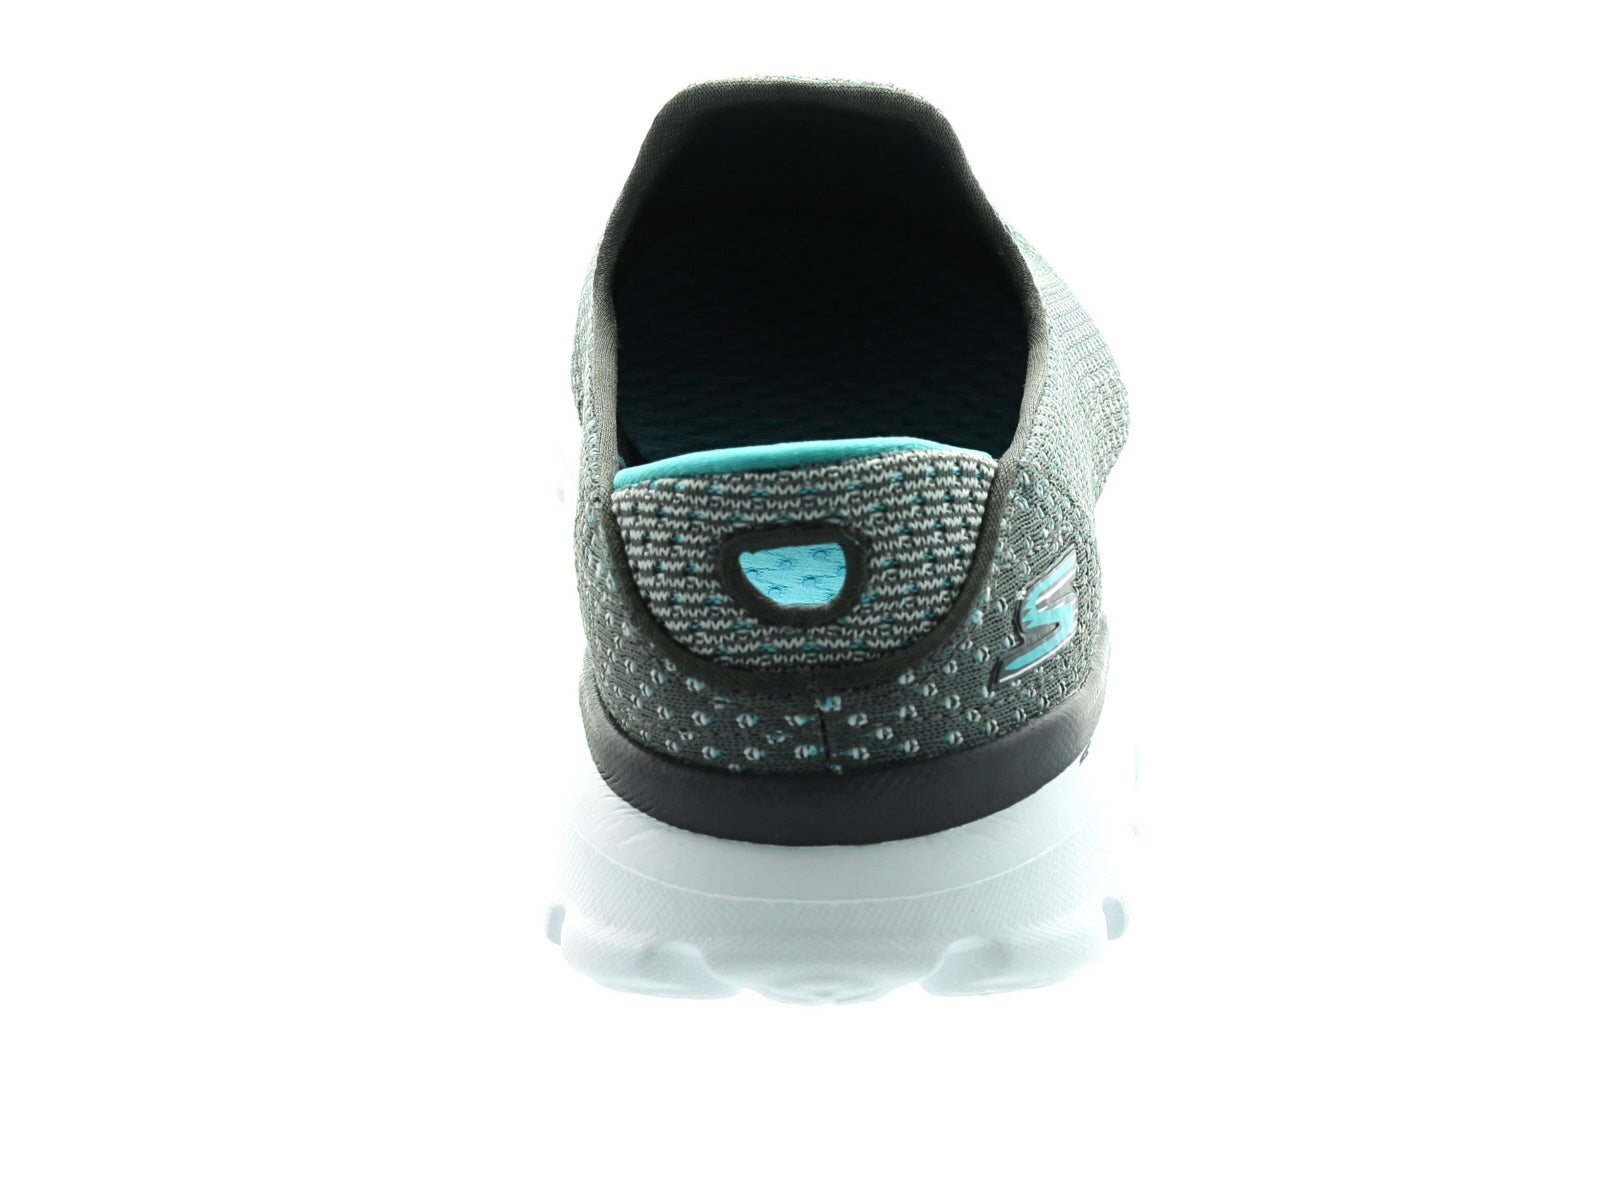 Skechers Go Walk 314060 in Charcoal/Blue back view